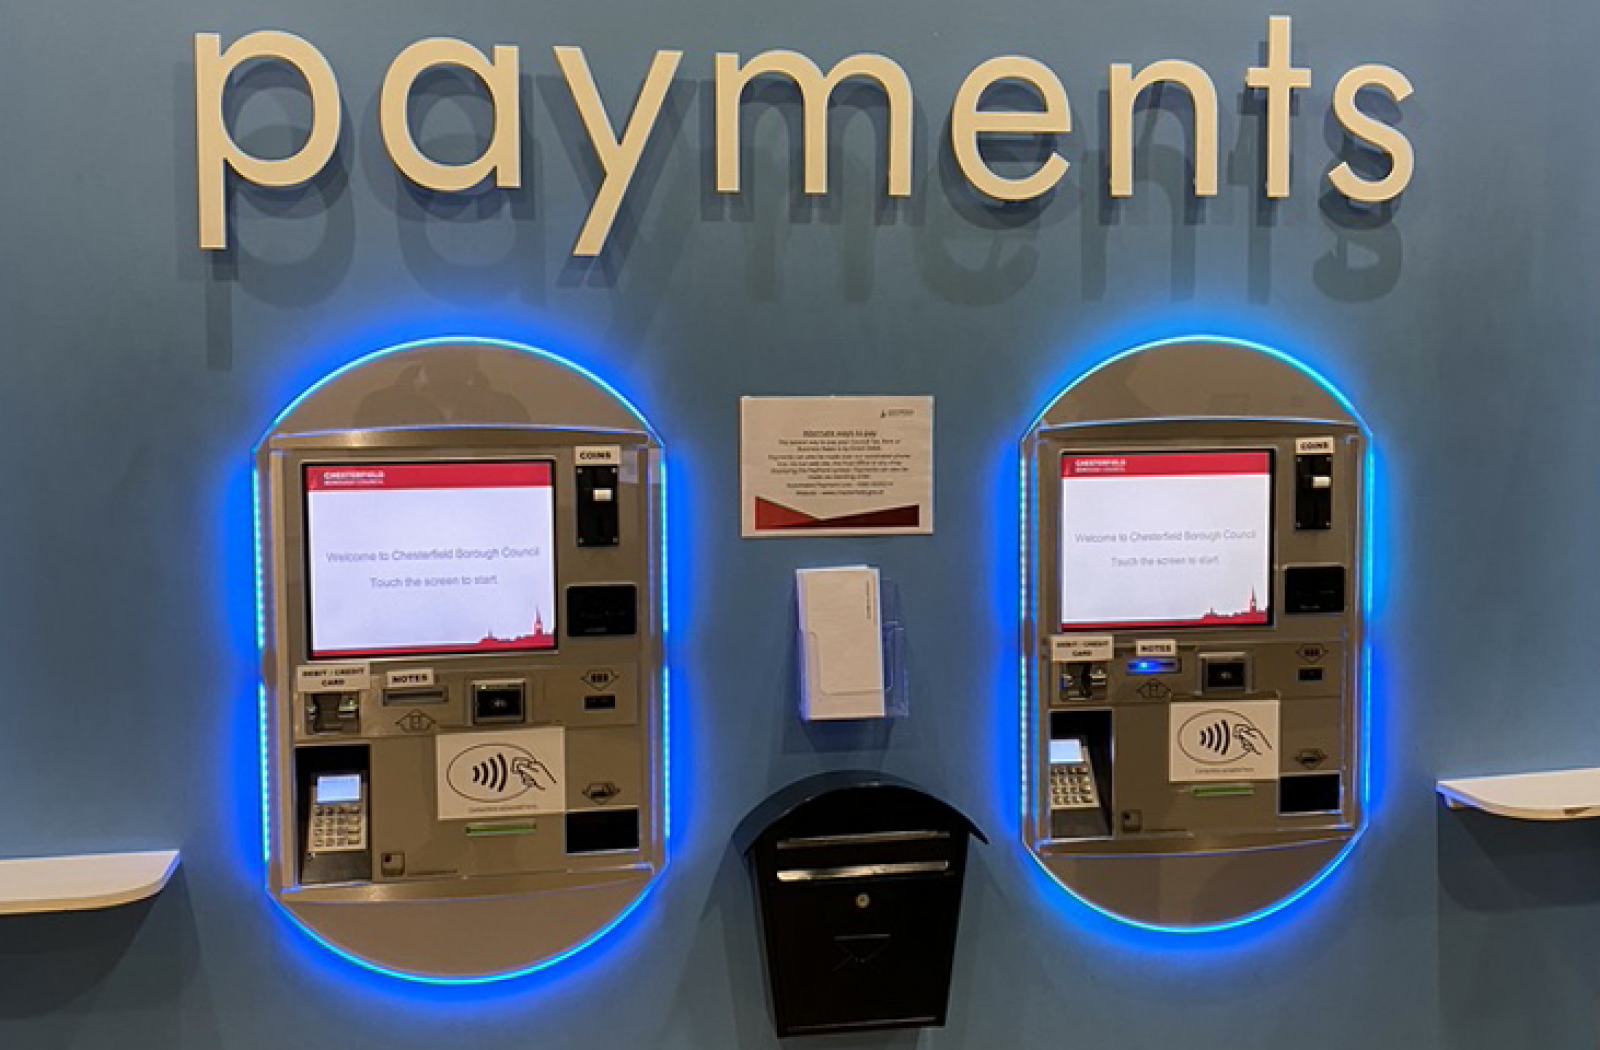 Chesterfield Borough Council Payment Kiosks